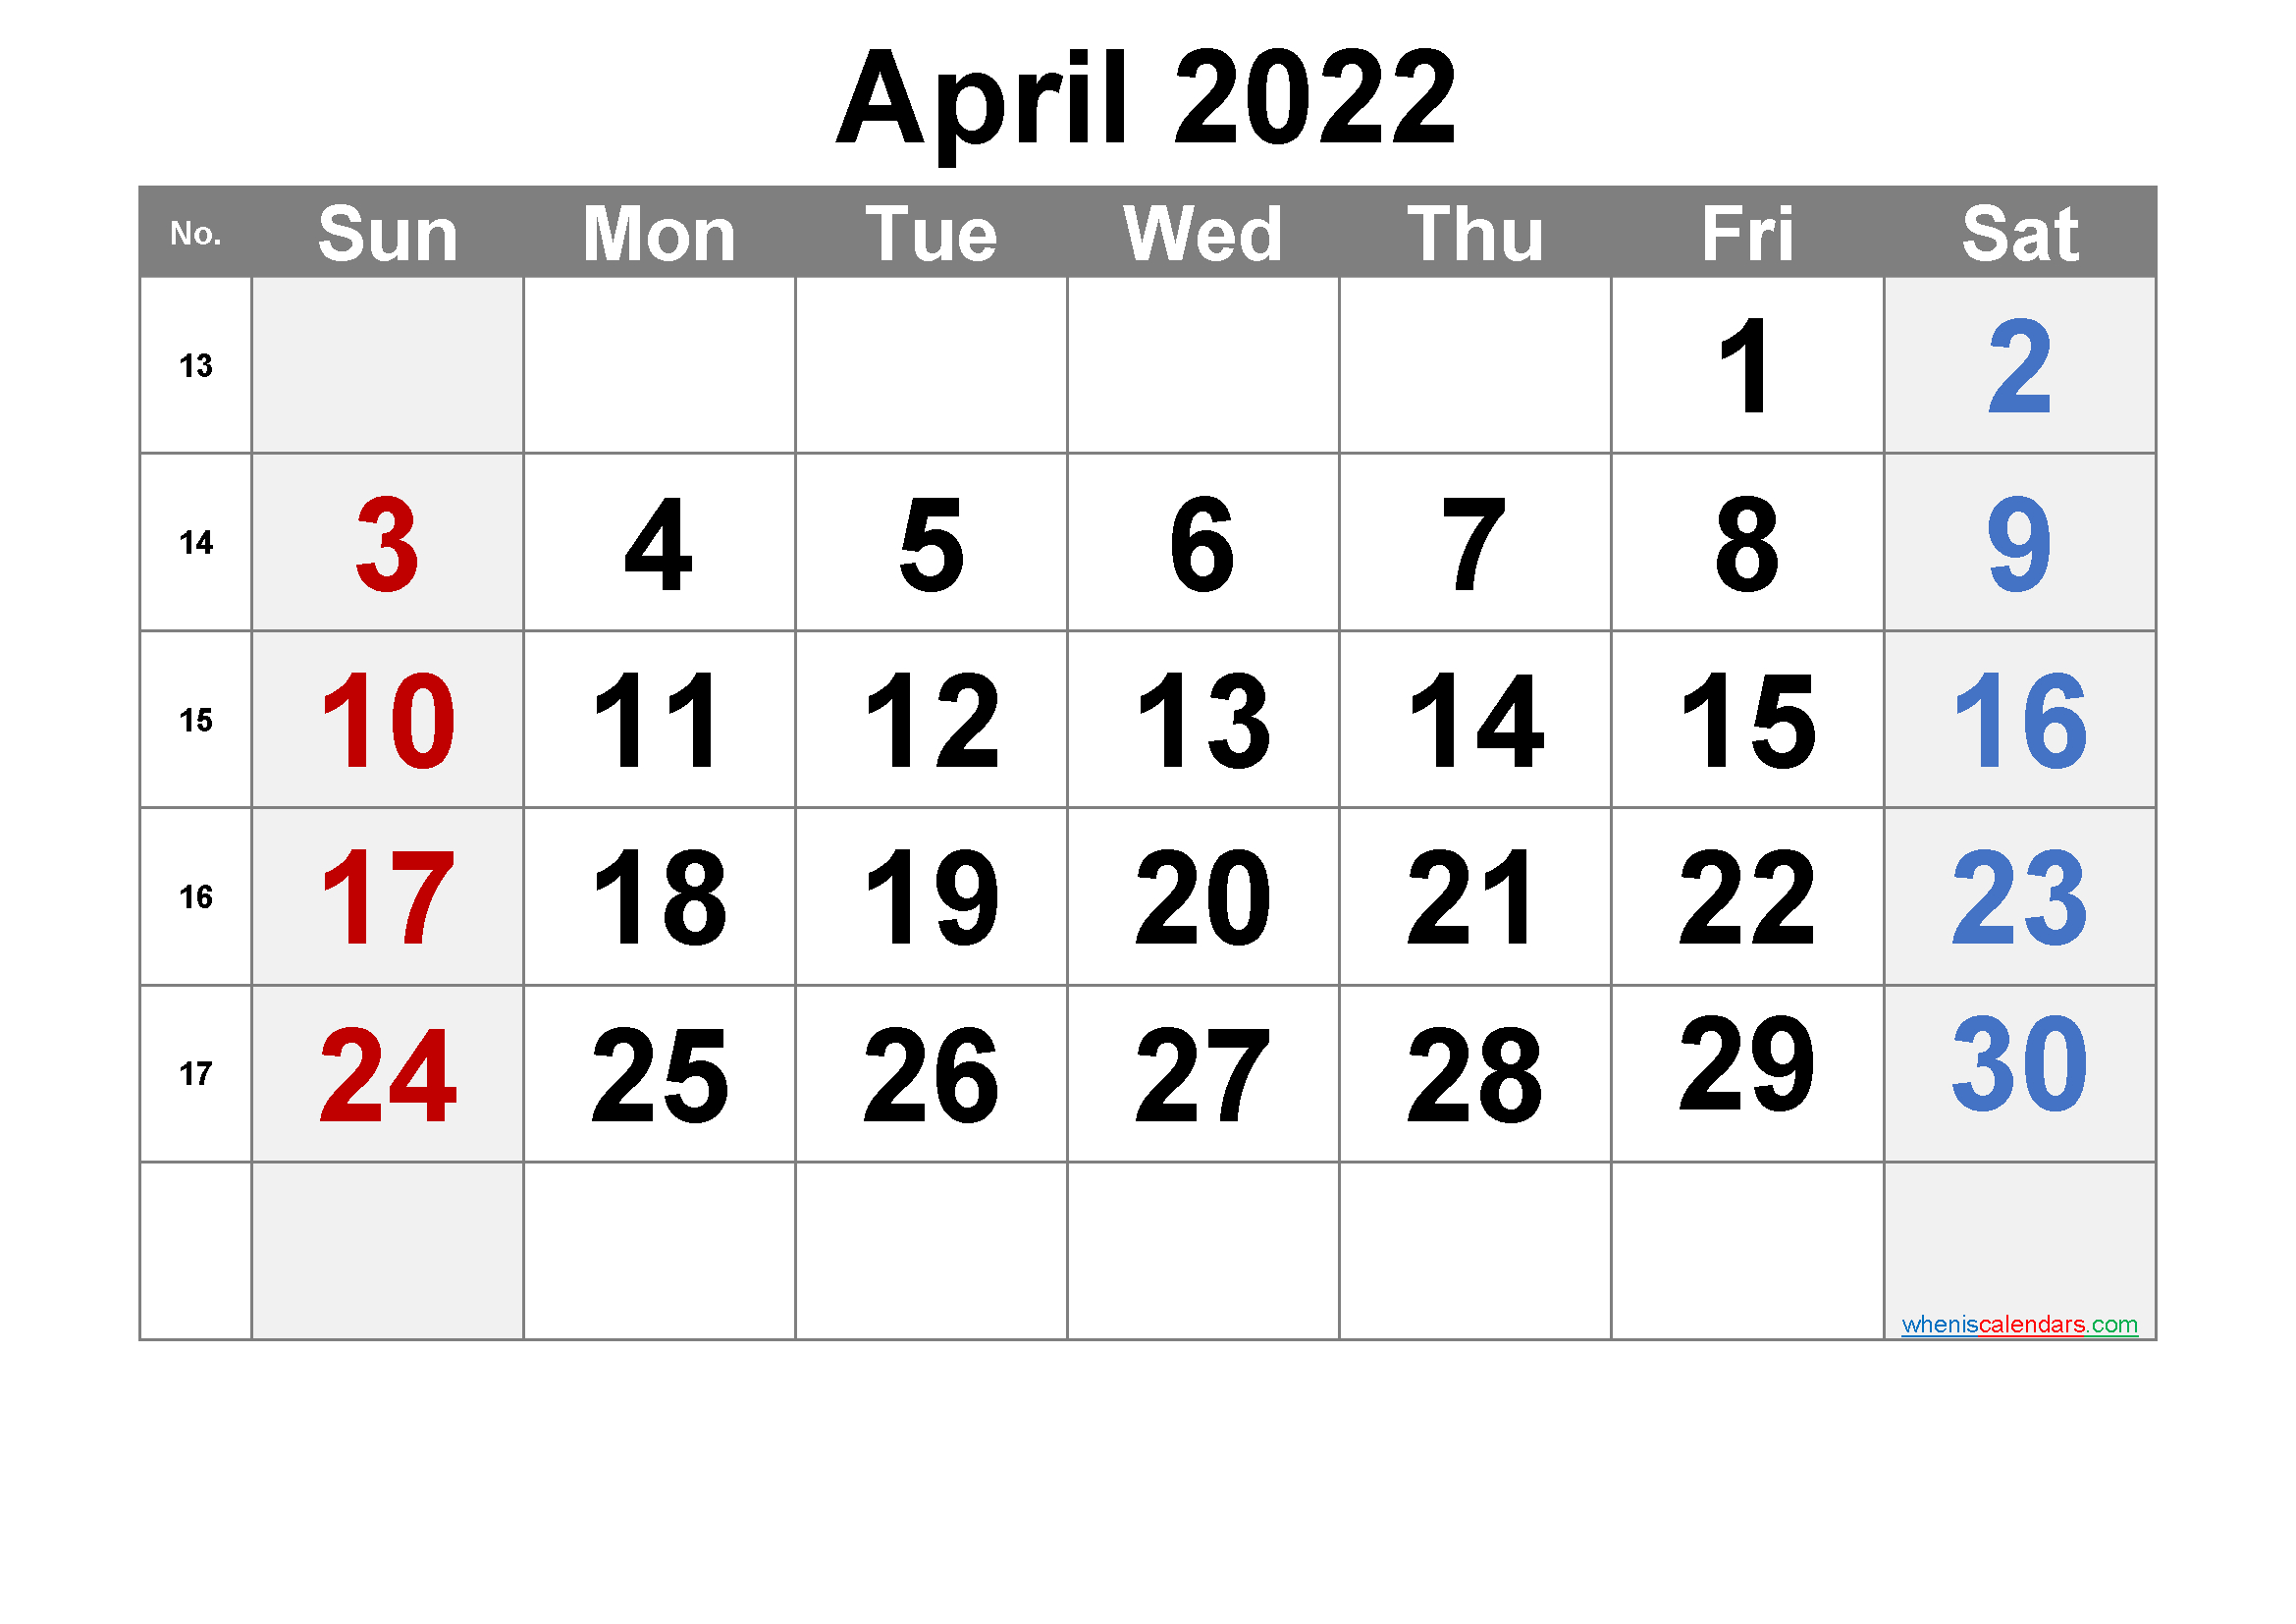 Free April 2022 Calendar With Week Numbers - Free intended for Print Calendar April 2022